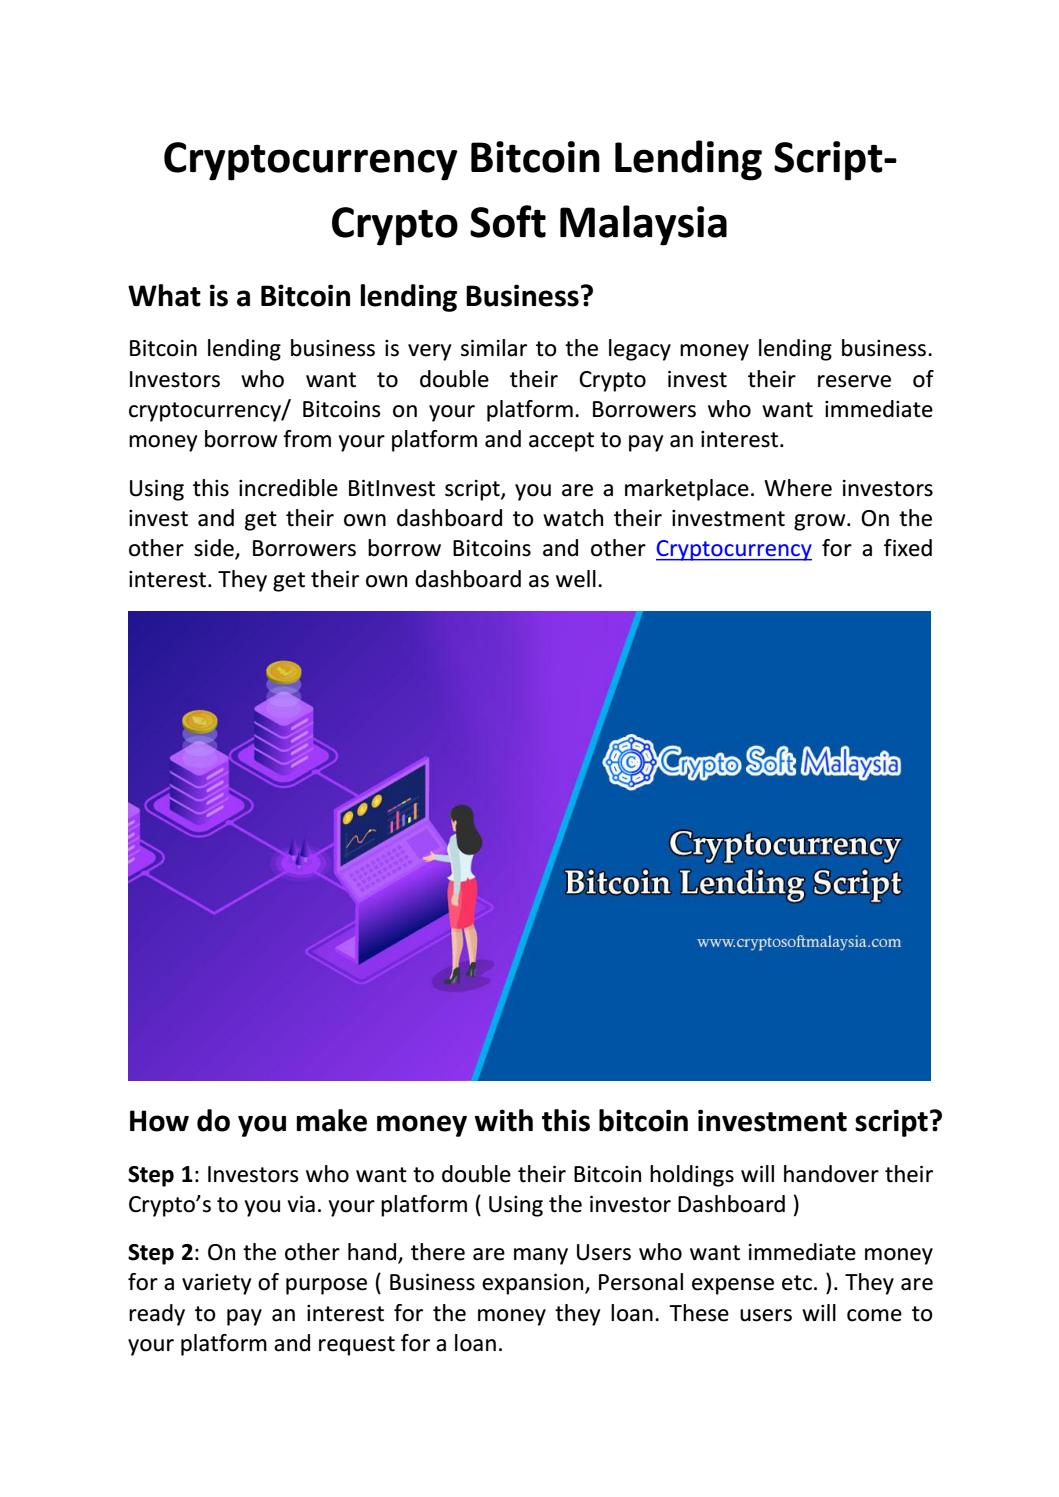 how to invest in cryptocurrency in malaysia